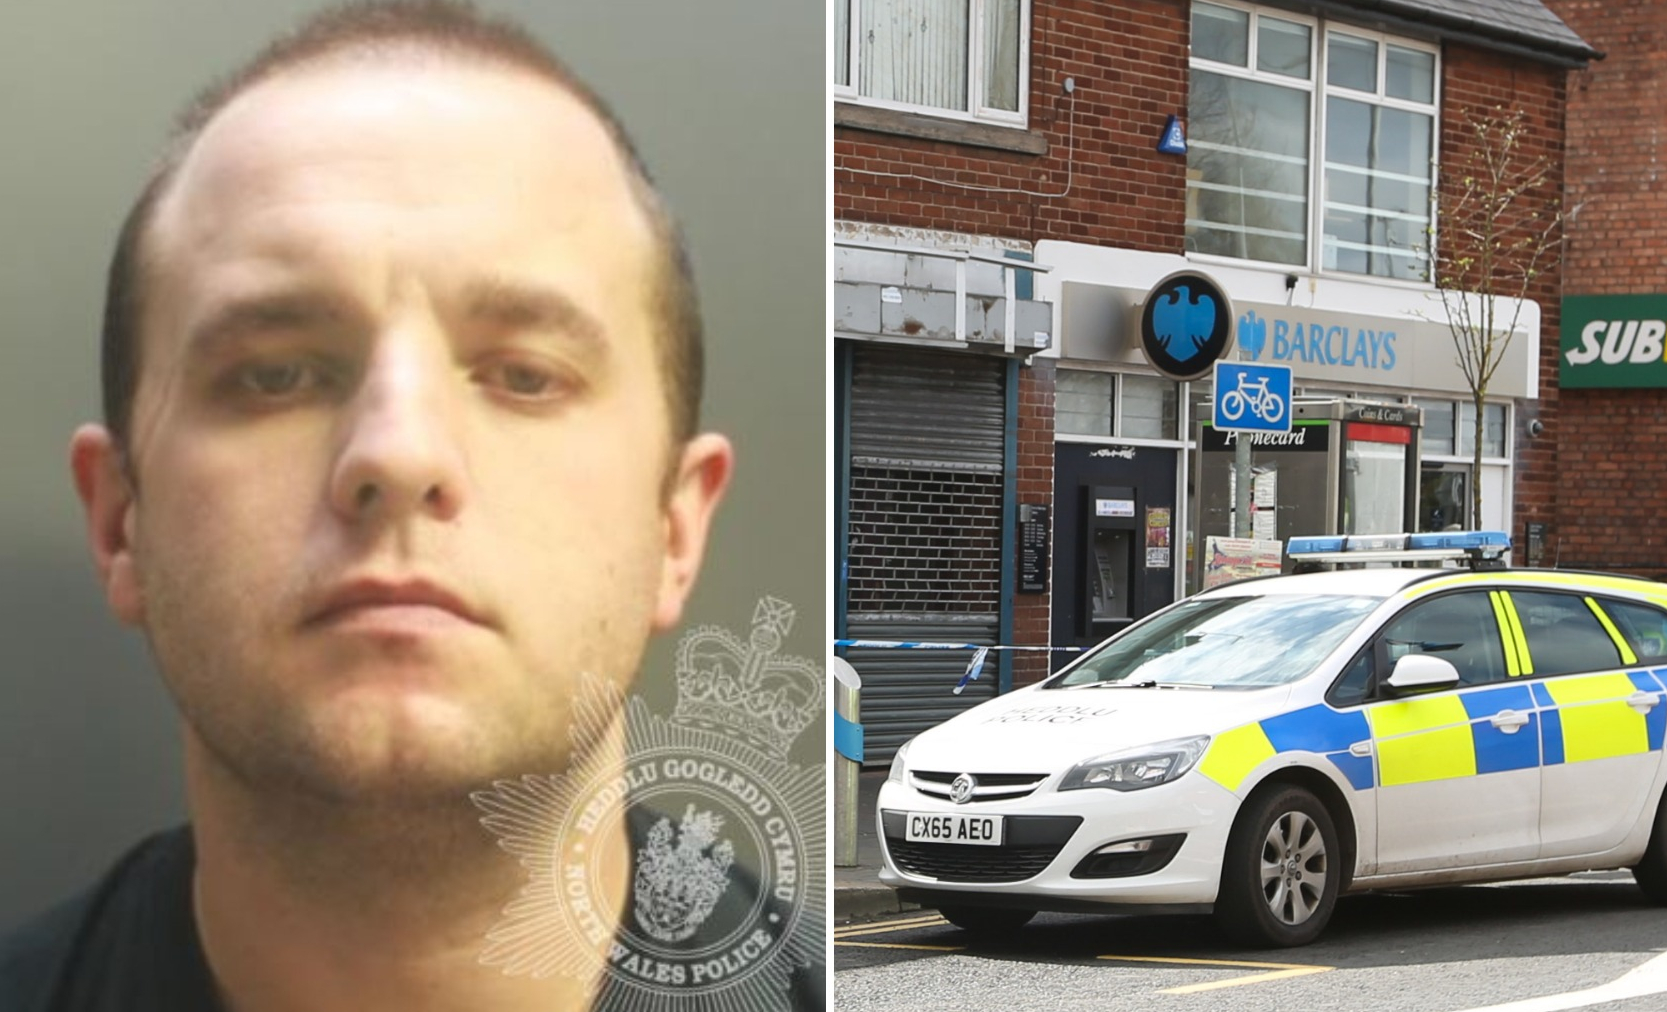 Joseph John Hennigan was jailed for the robbery of Barclays Bank in Queensferry